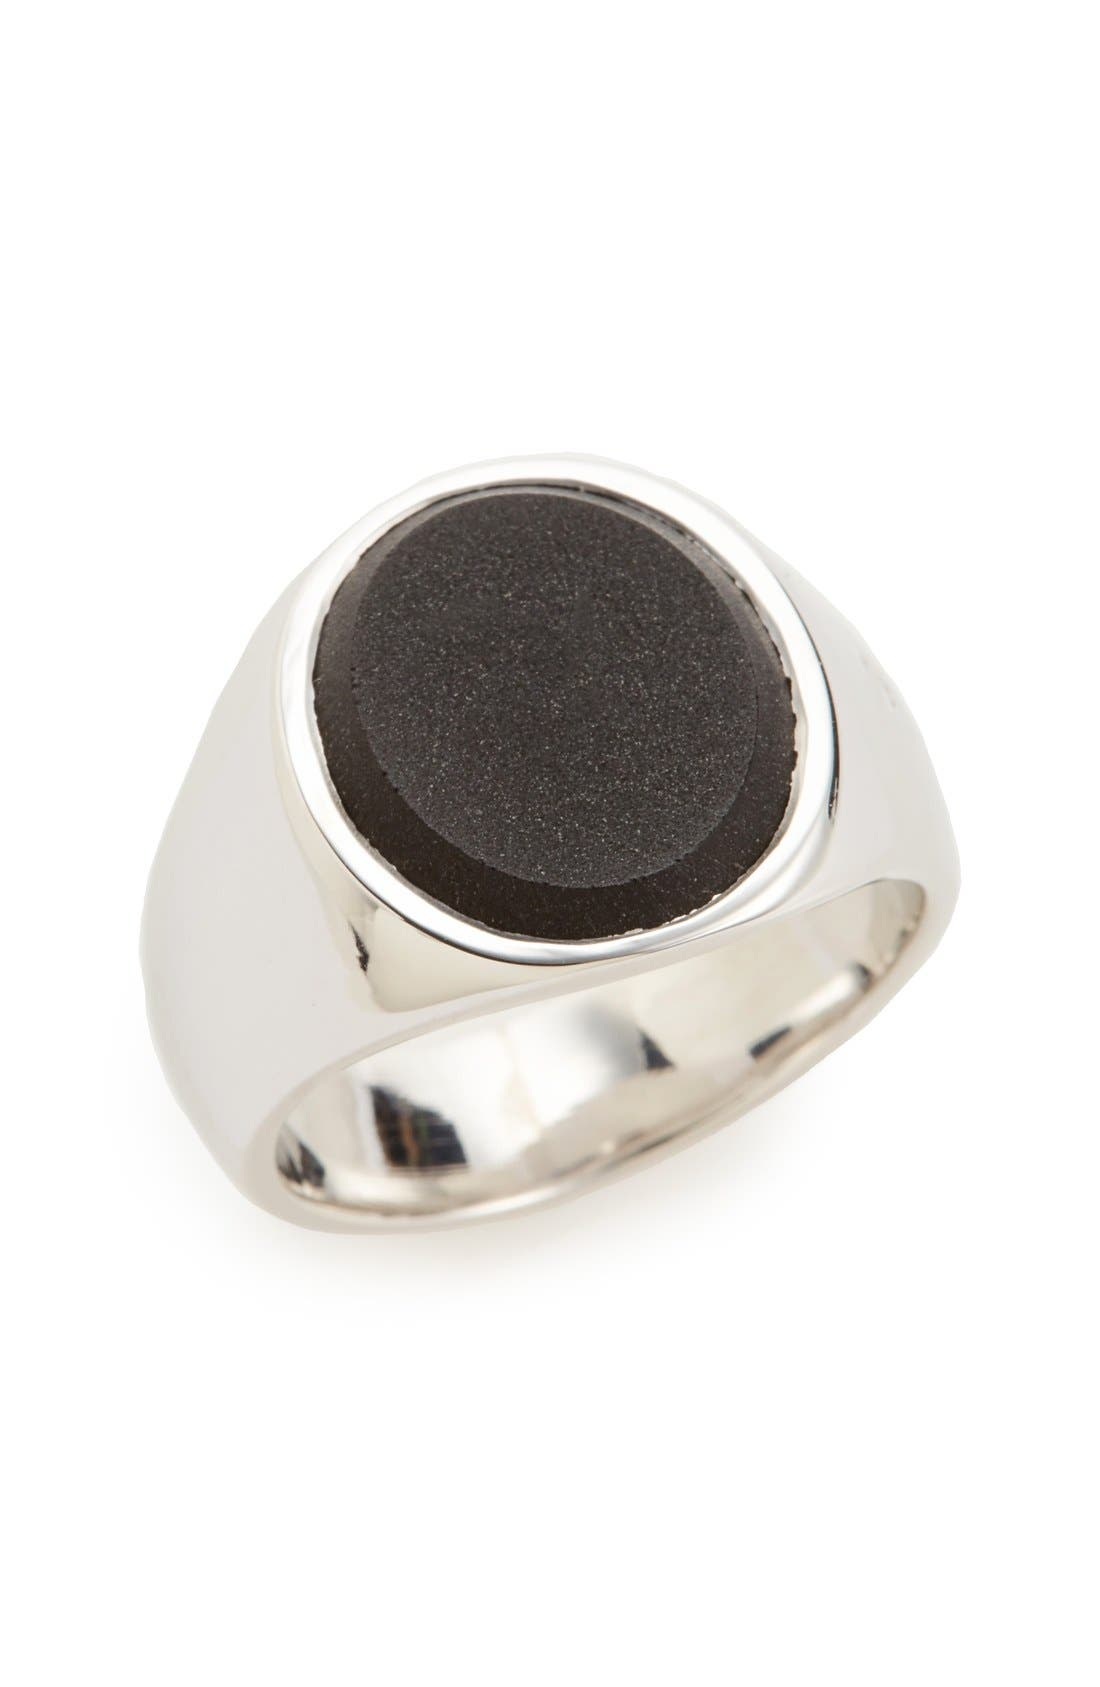 Patriot Collection Oval Black Onyx Signet Ring,                         Main,                         color, Silver